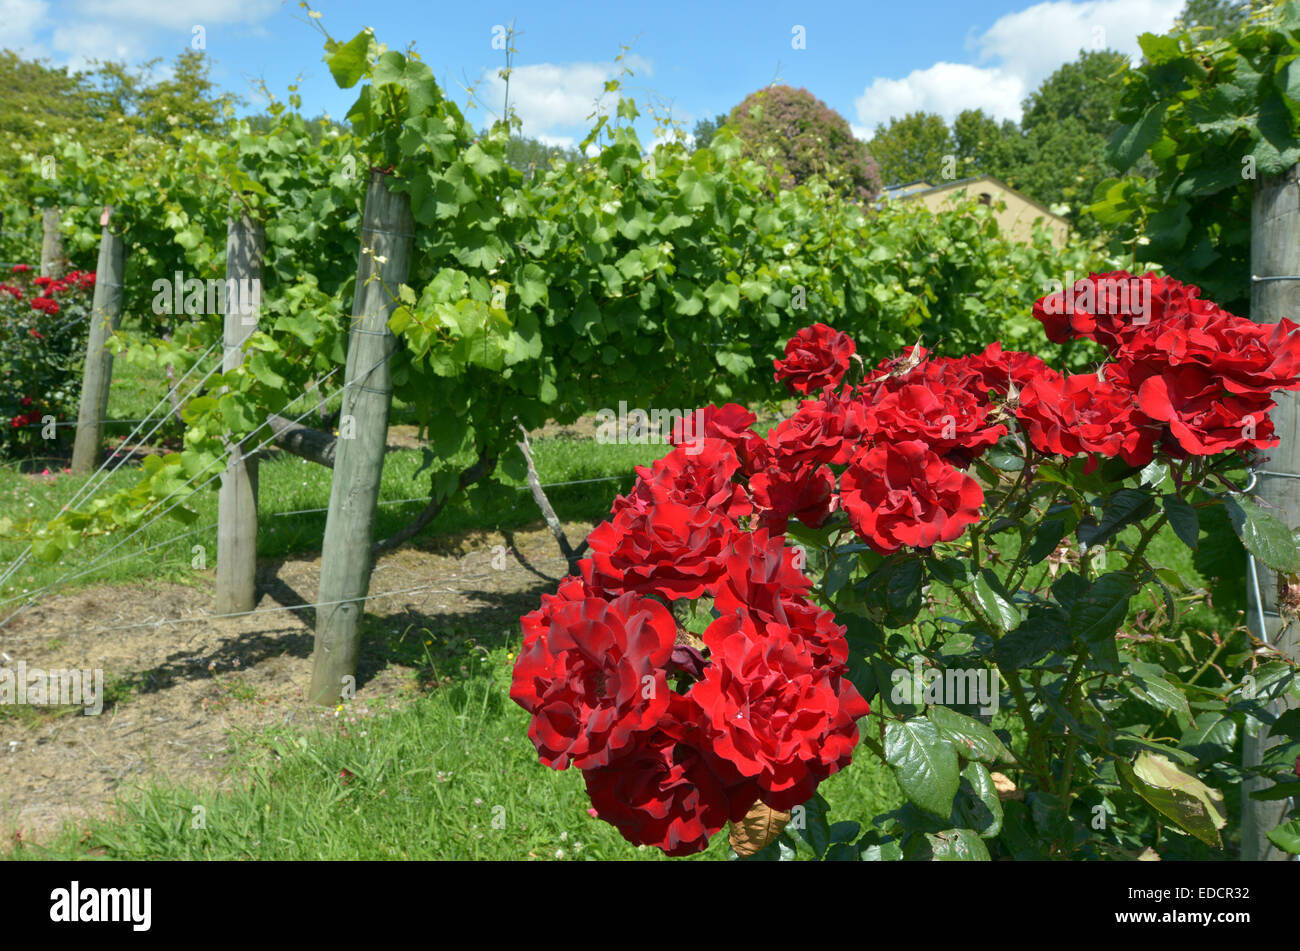 roses and vineyard stockfotos roses and vineyard bilder alamy. Black Bedroom Furniture Sets. Home Design Ideas